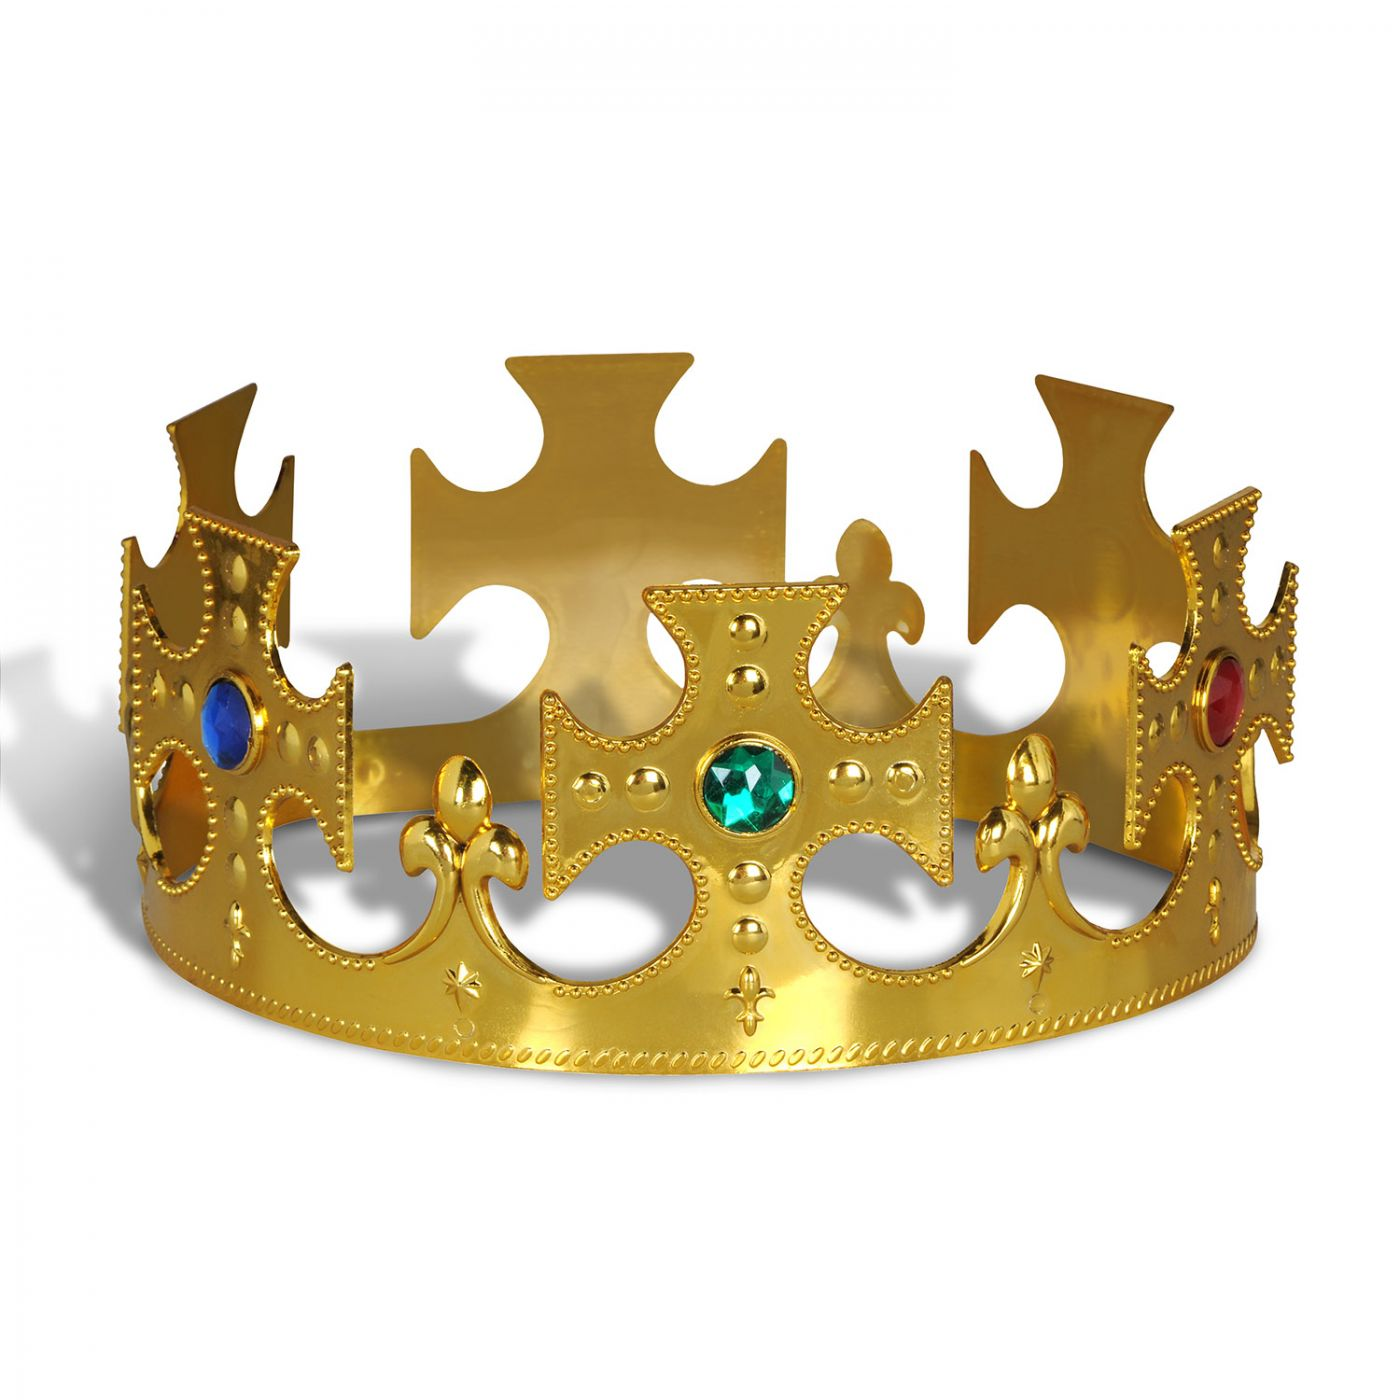 Plastic Jeweled King's Crown image